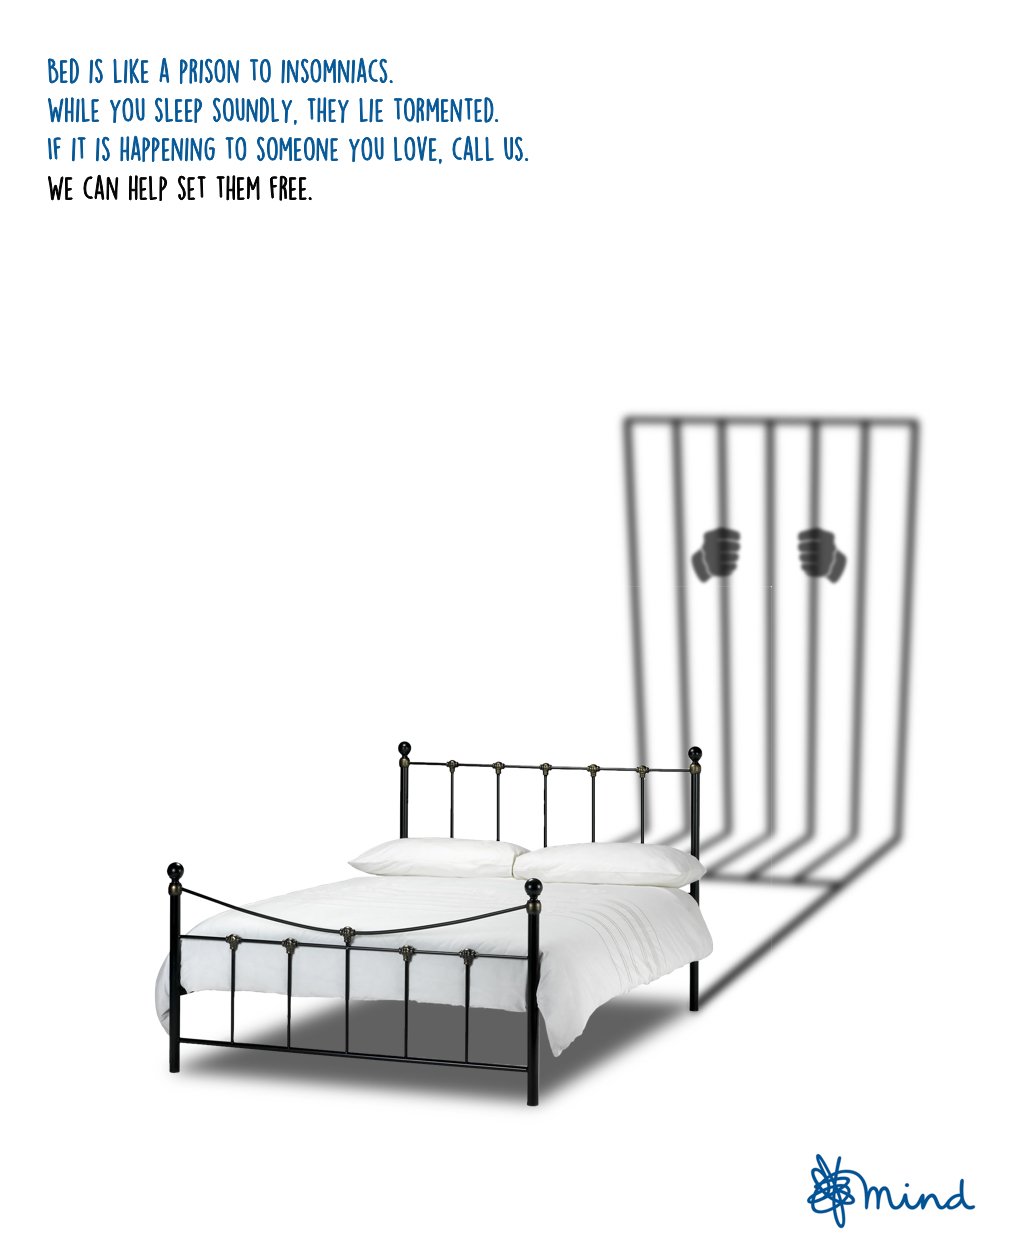 advertising idea to raise awareness of insomnia - bed is like a prison to insomniacs